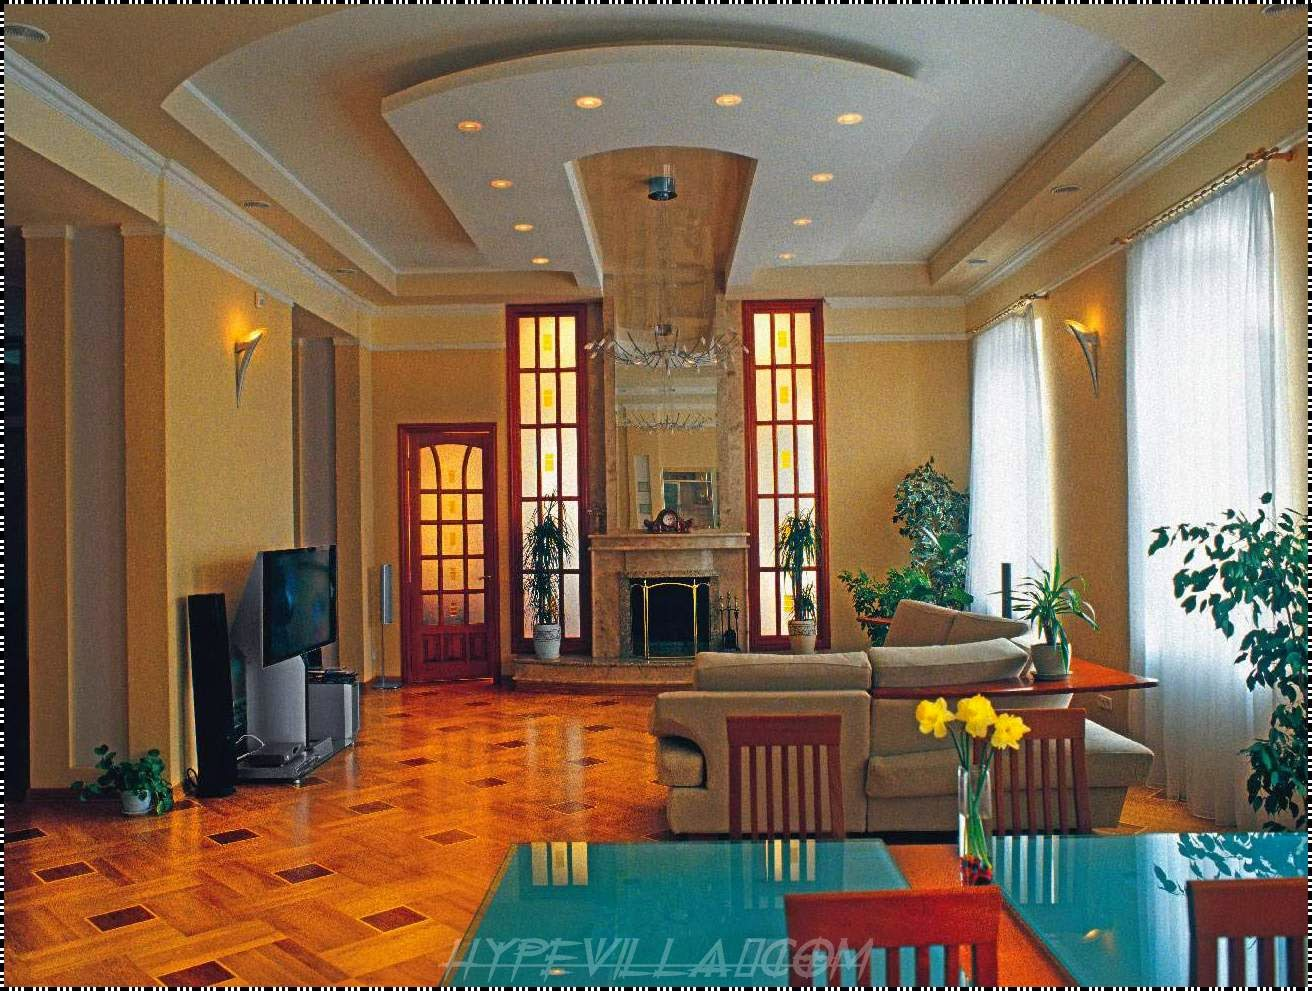 The Most Beautiful House Interior Design Ideas And ... on Beautiful Home Decor  id=83548